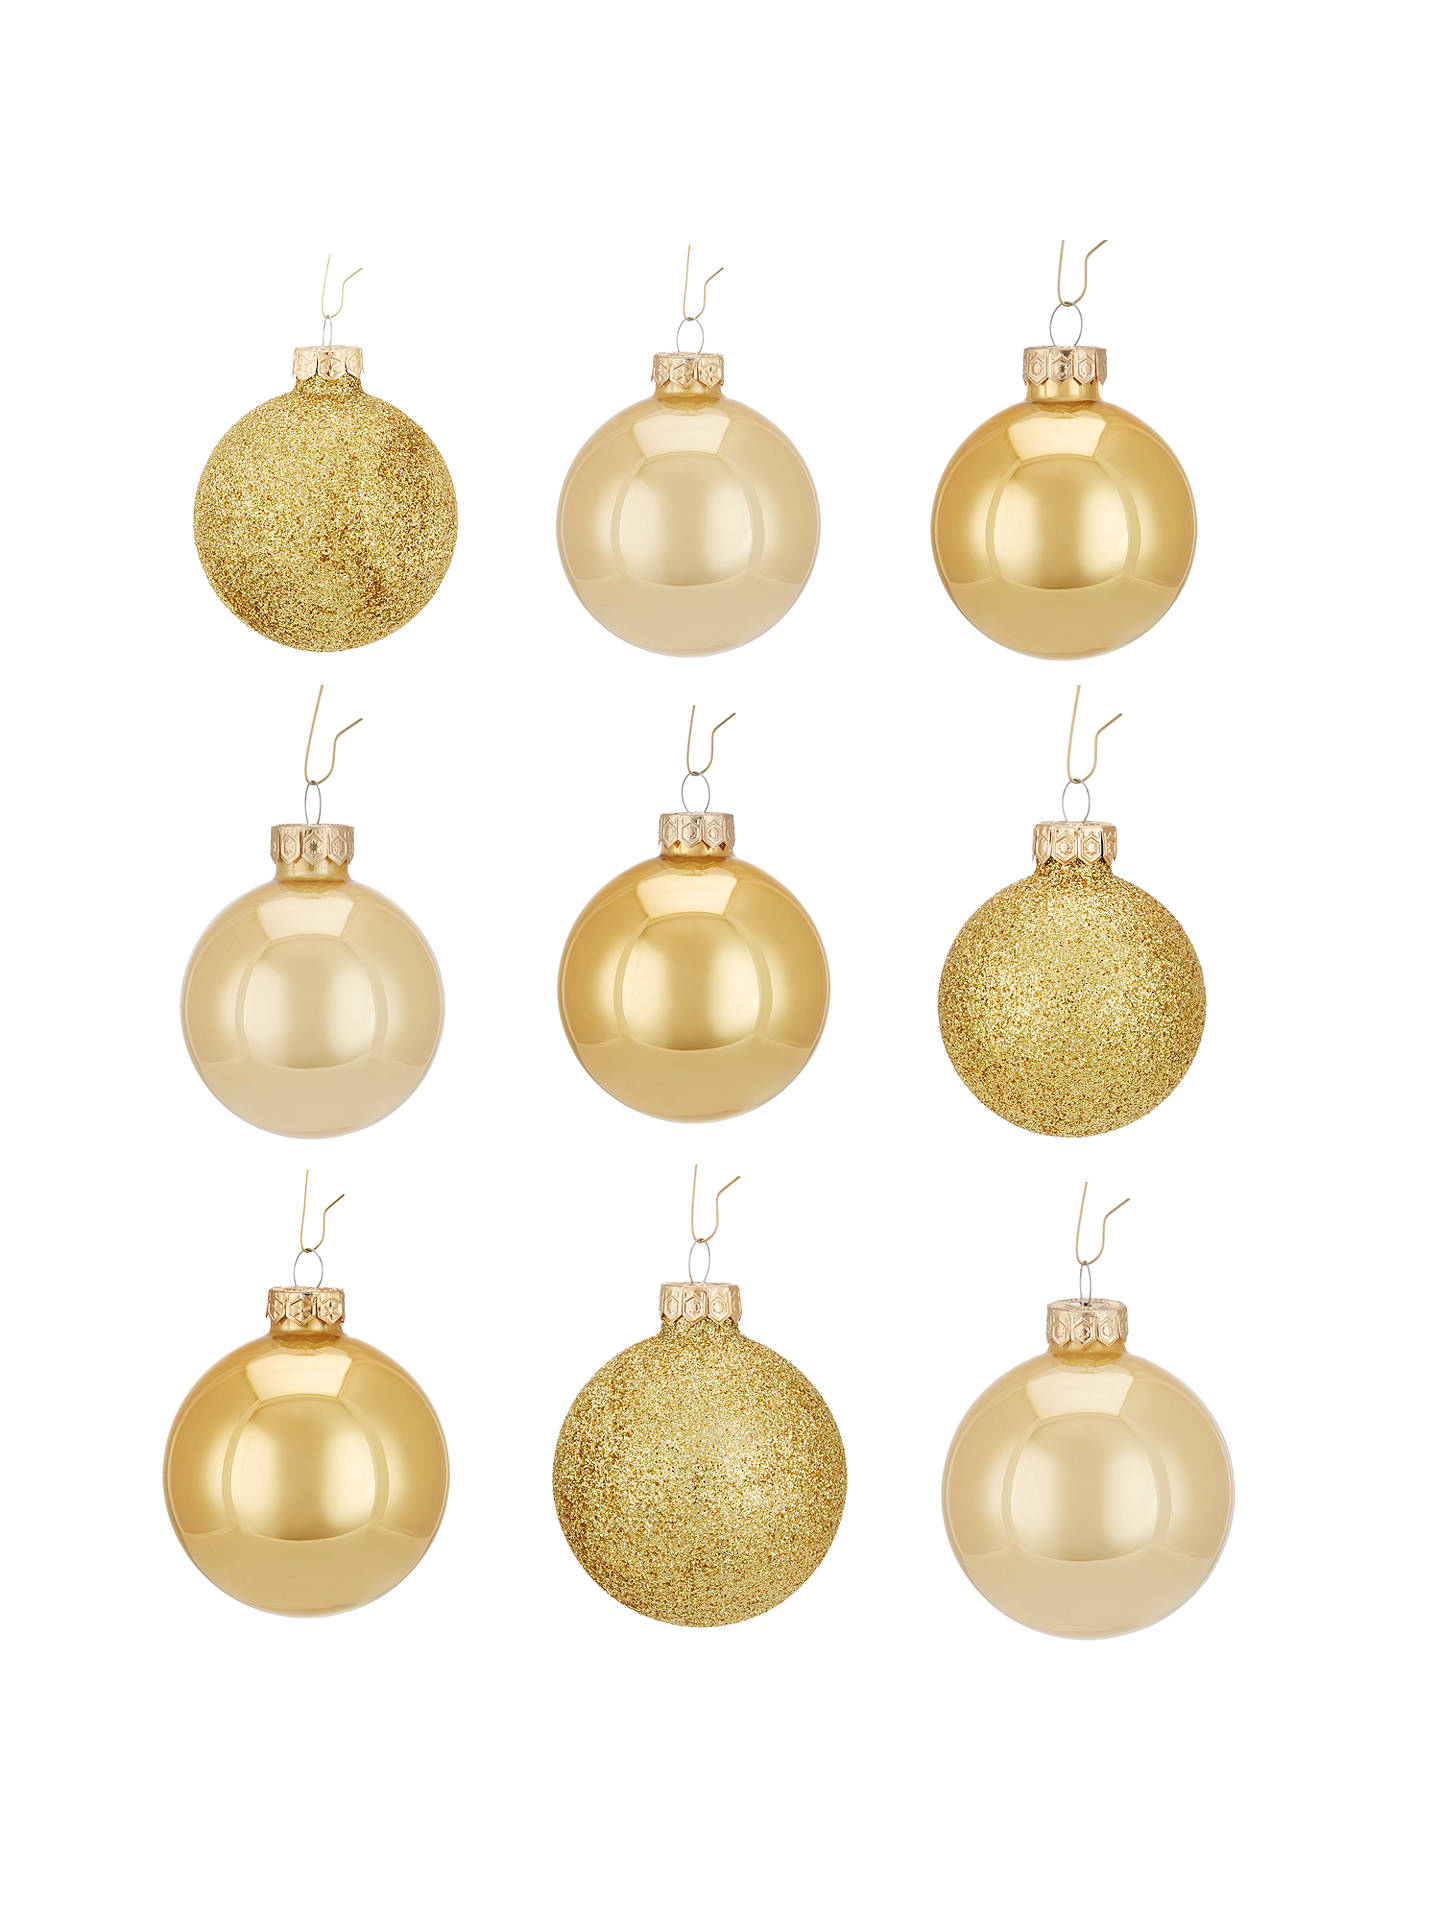 john lewis mixed glass baubles box of 42 gold at john. Black Bedroom Furniture Sets. Home Design Ideas